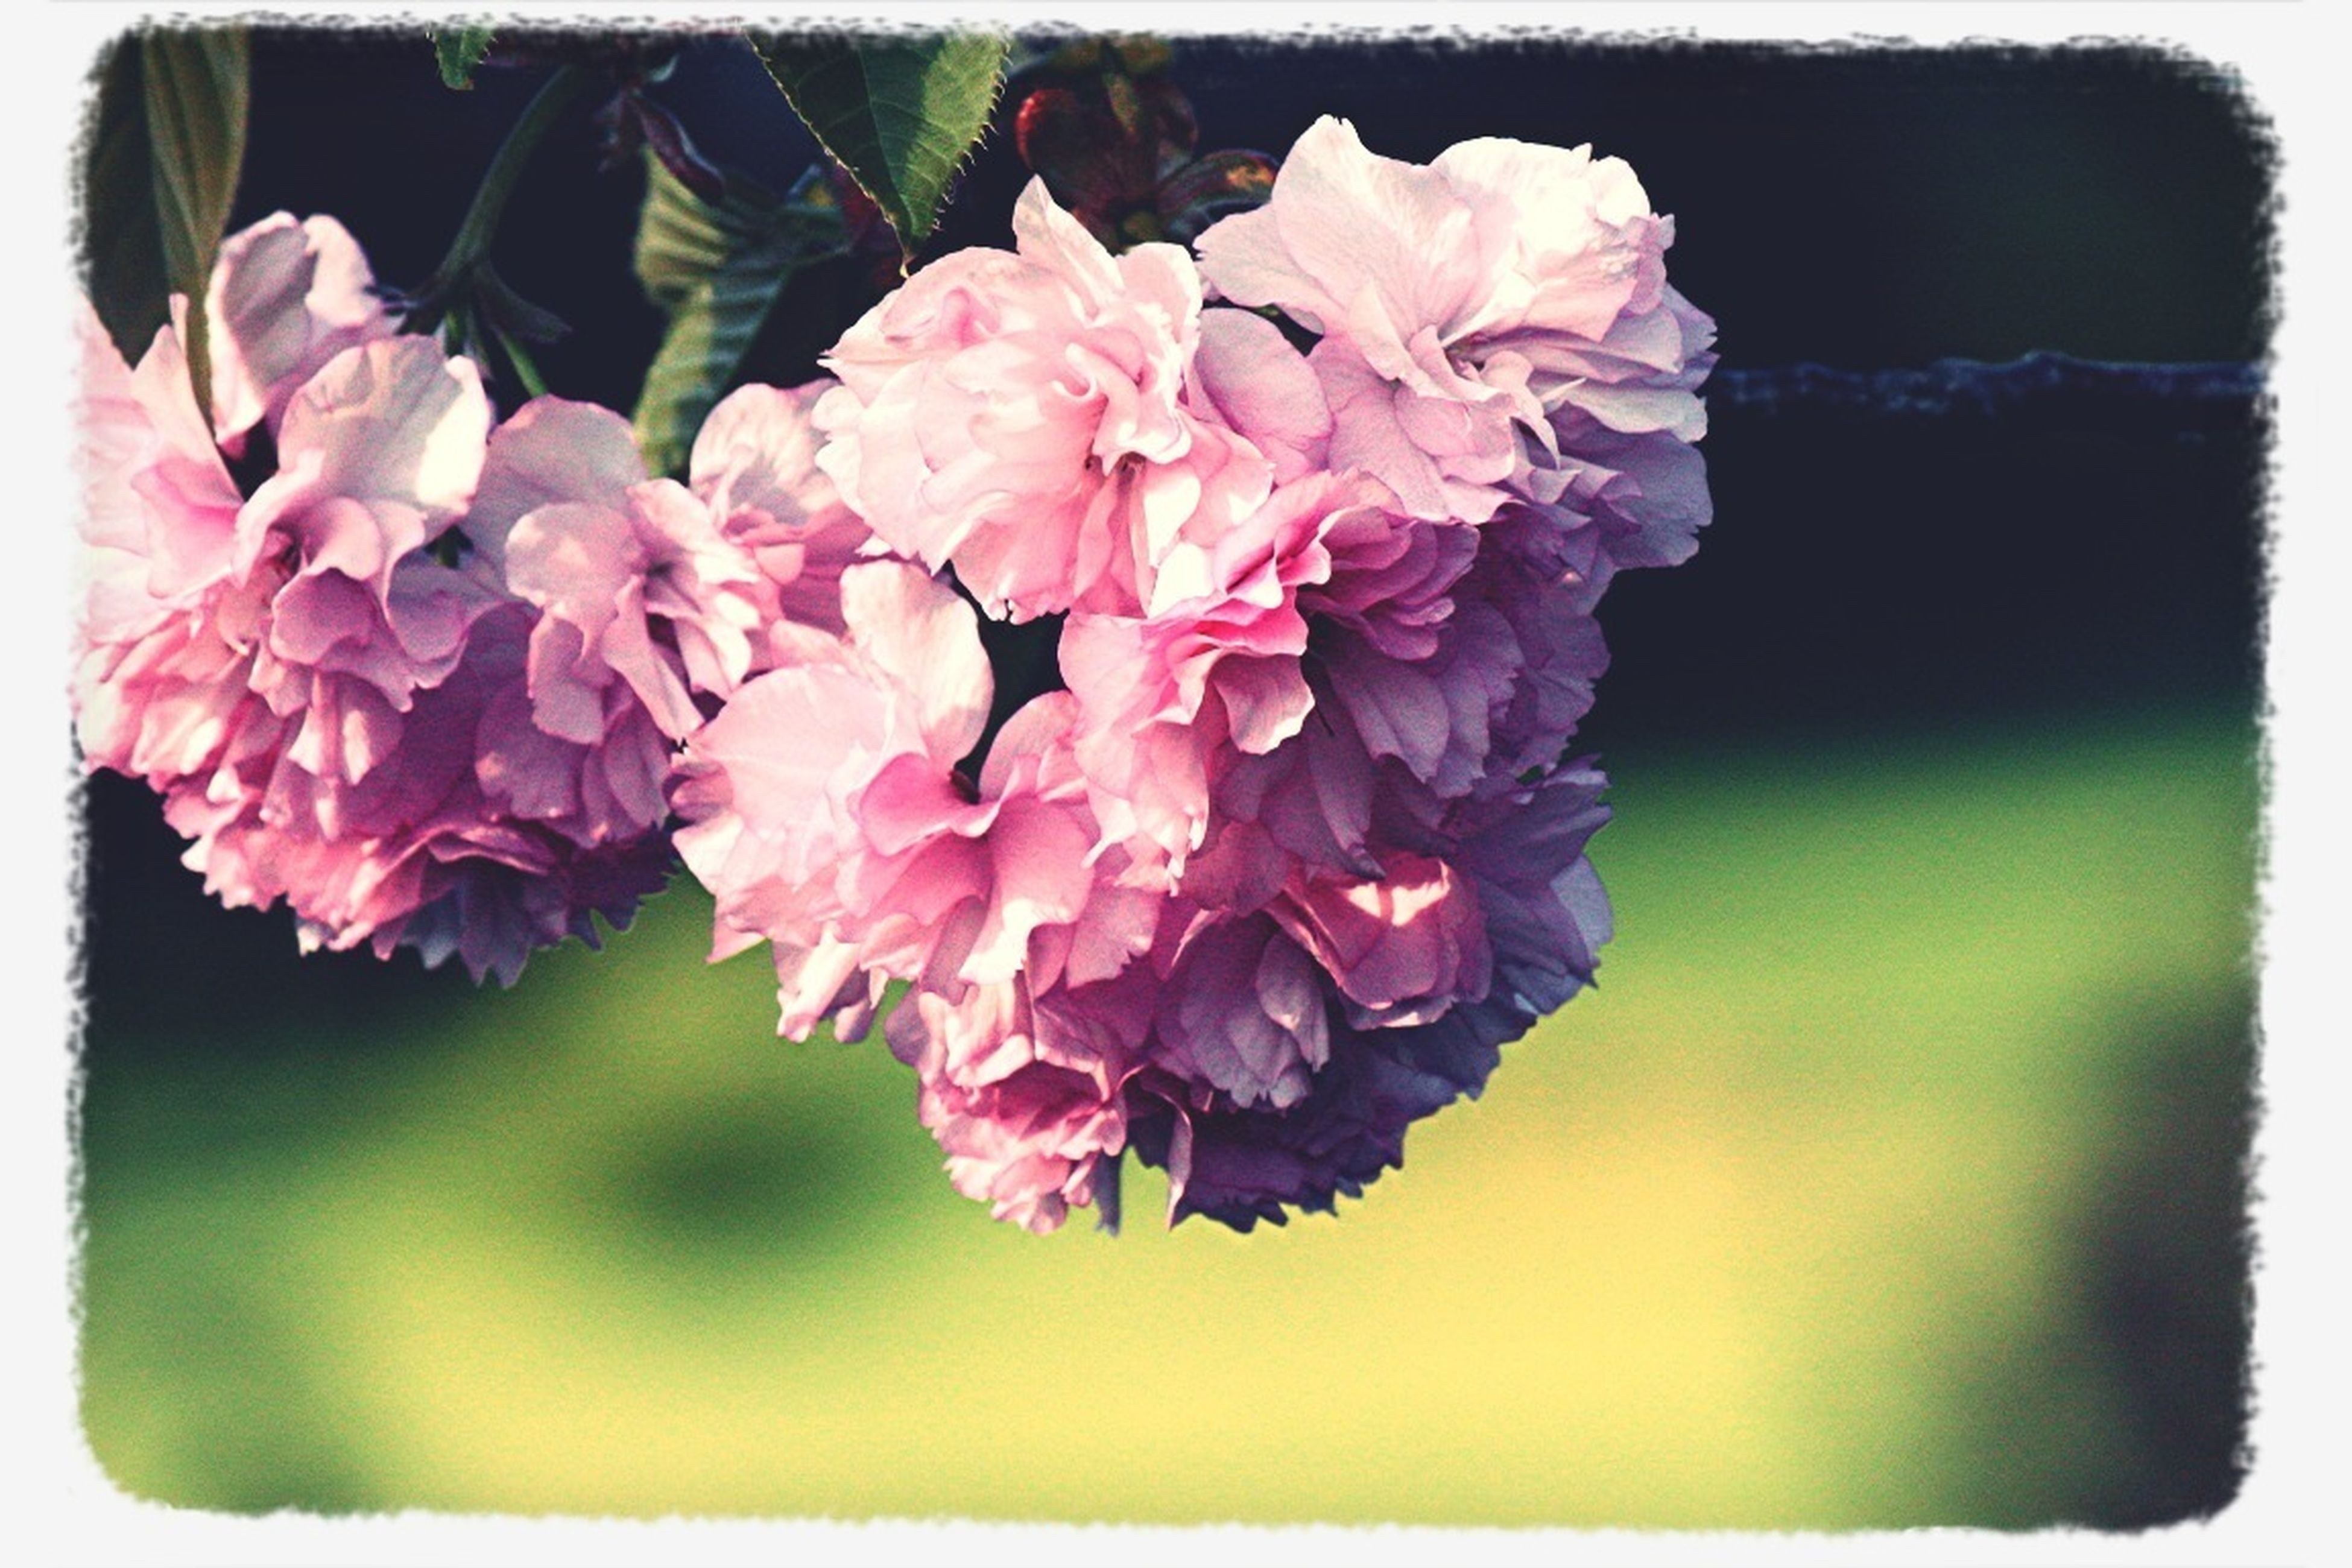 flower, transfer print, fragility, freshness, petal, auto post production filter, beauty in nature, flower head, growth, close-up, nature, focus on foreground, blooming, blossom, plant, pink color, in bloom, bunch of flowers, botany, springtime